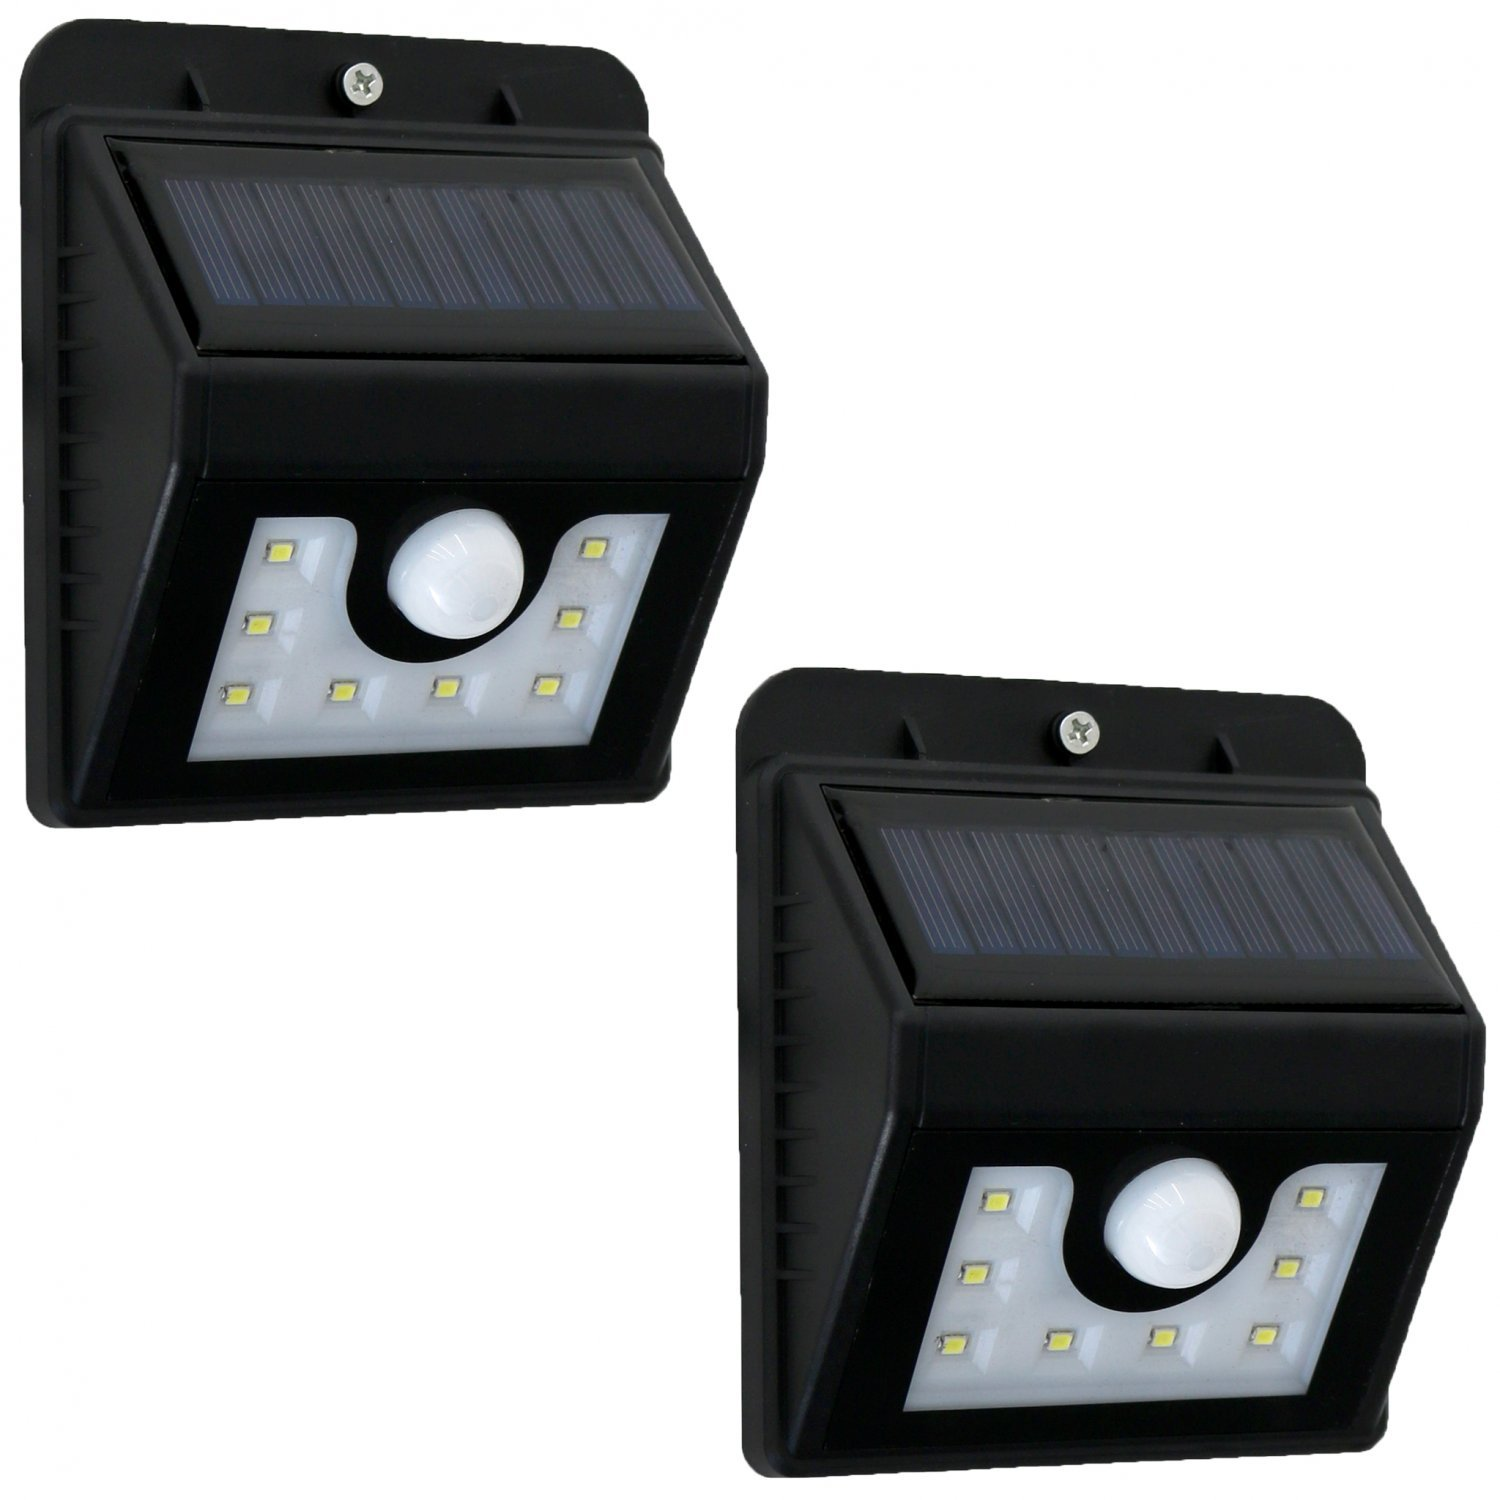 2x Waterproof Wall Mounted Outdoor Solar Motion Sensor Led Light 19 99 Oypla Stocking The Very Best In Toys Electrical Furniture Homeware Garden Gifts And Much More